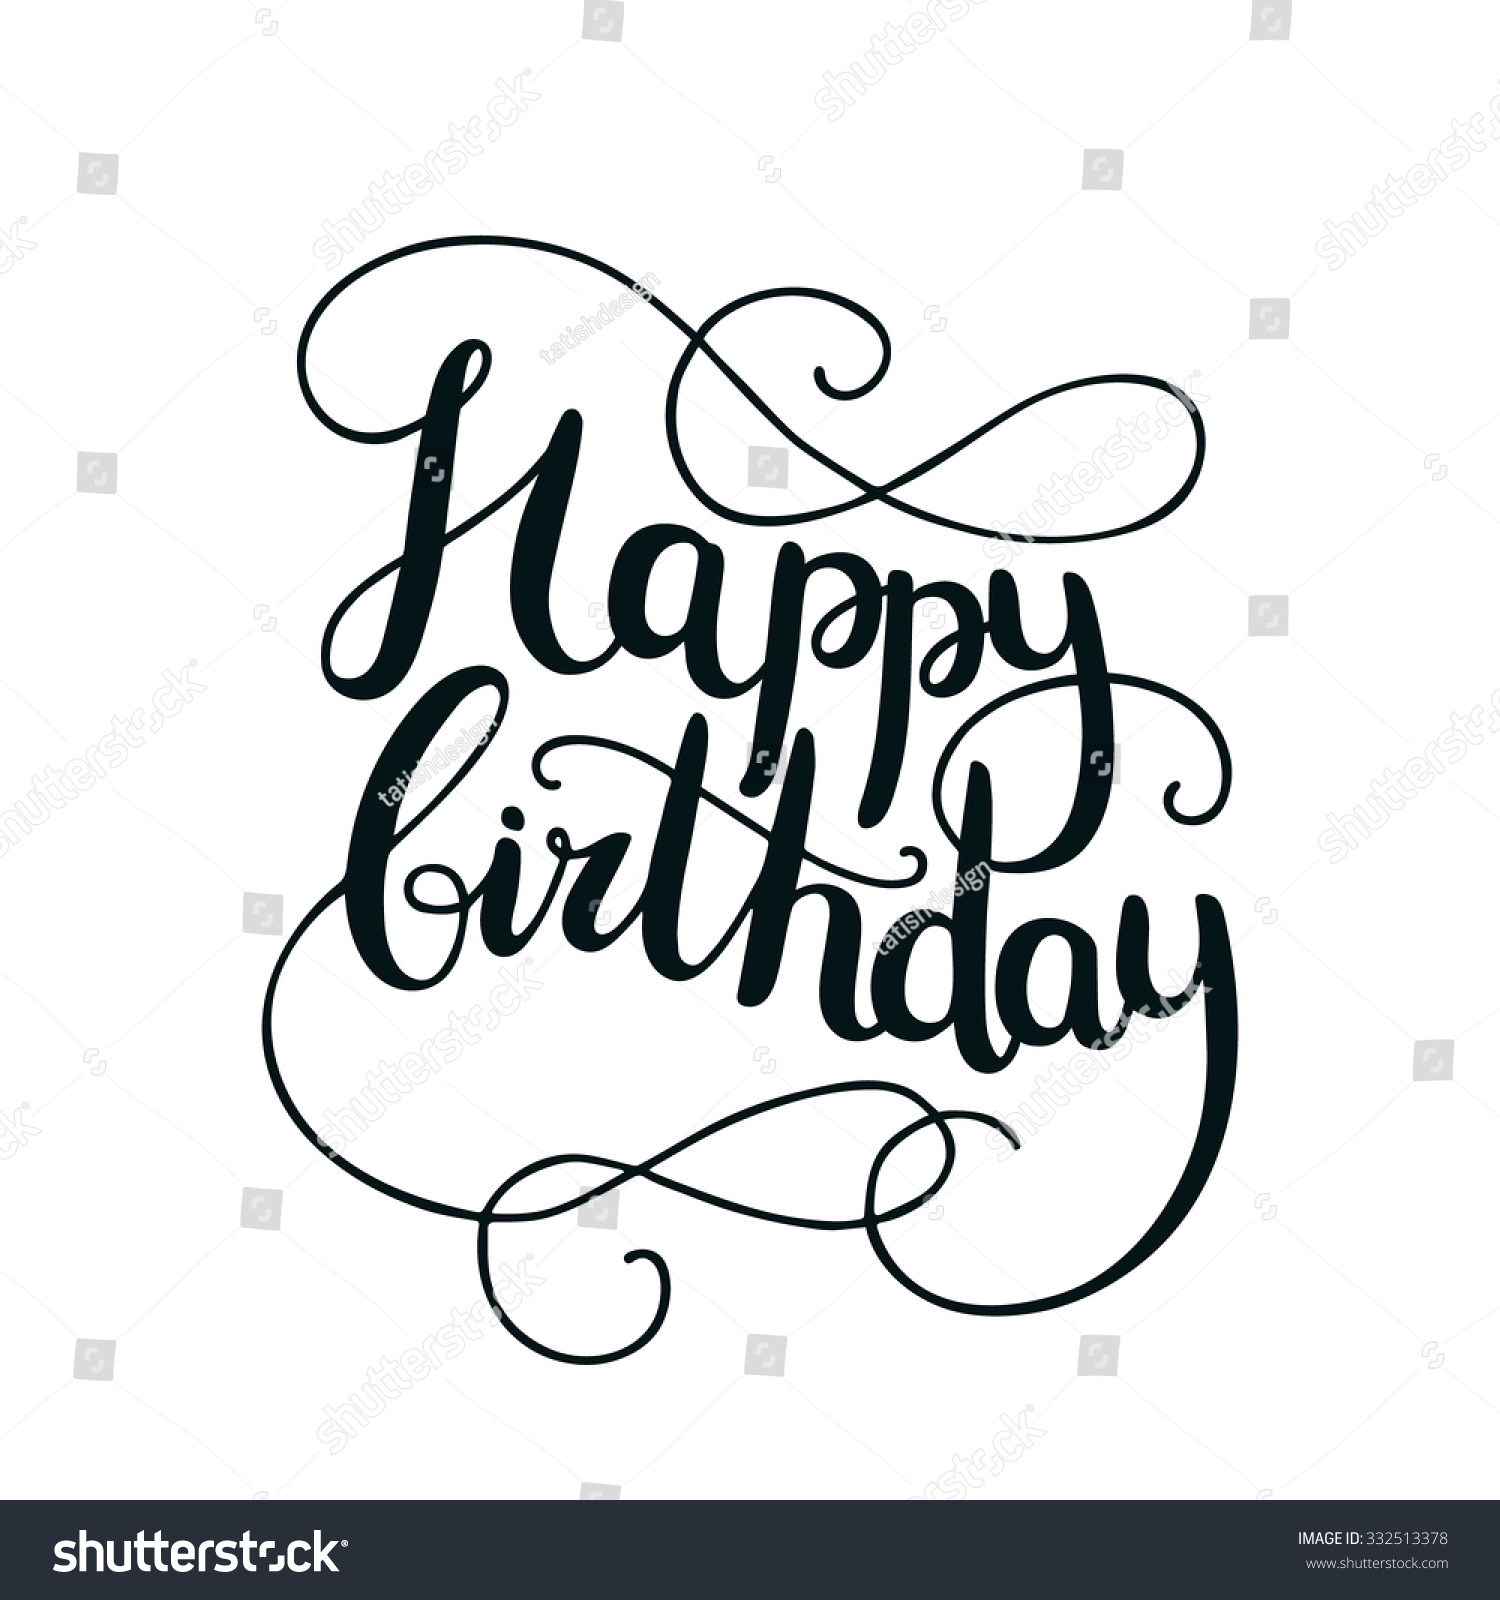 Happy birthday card with hand drawn lettering on white